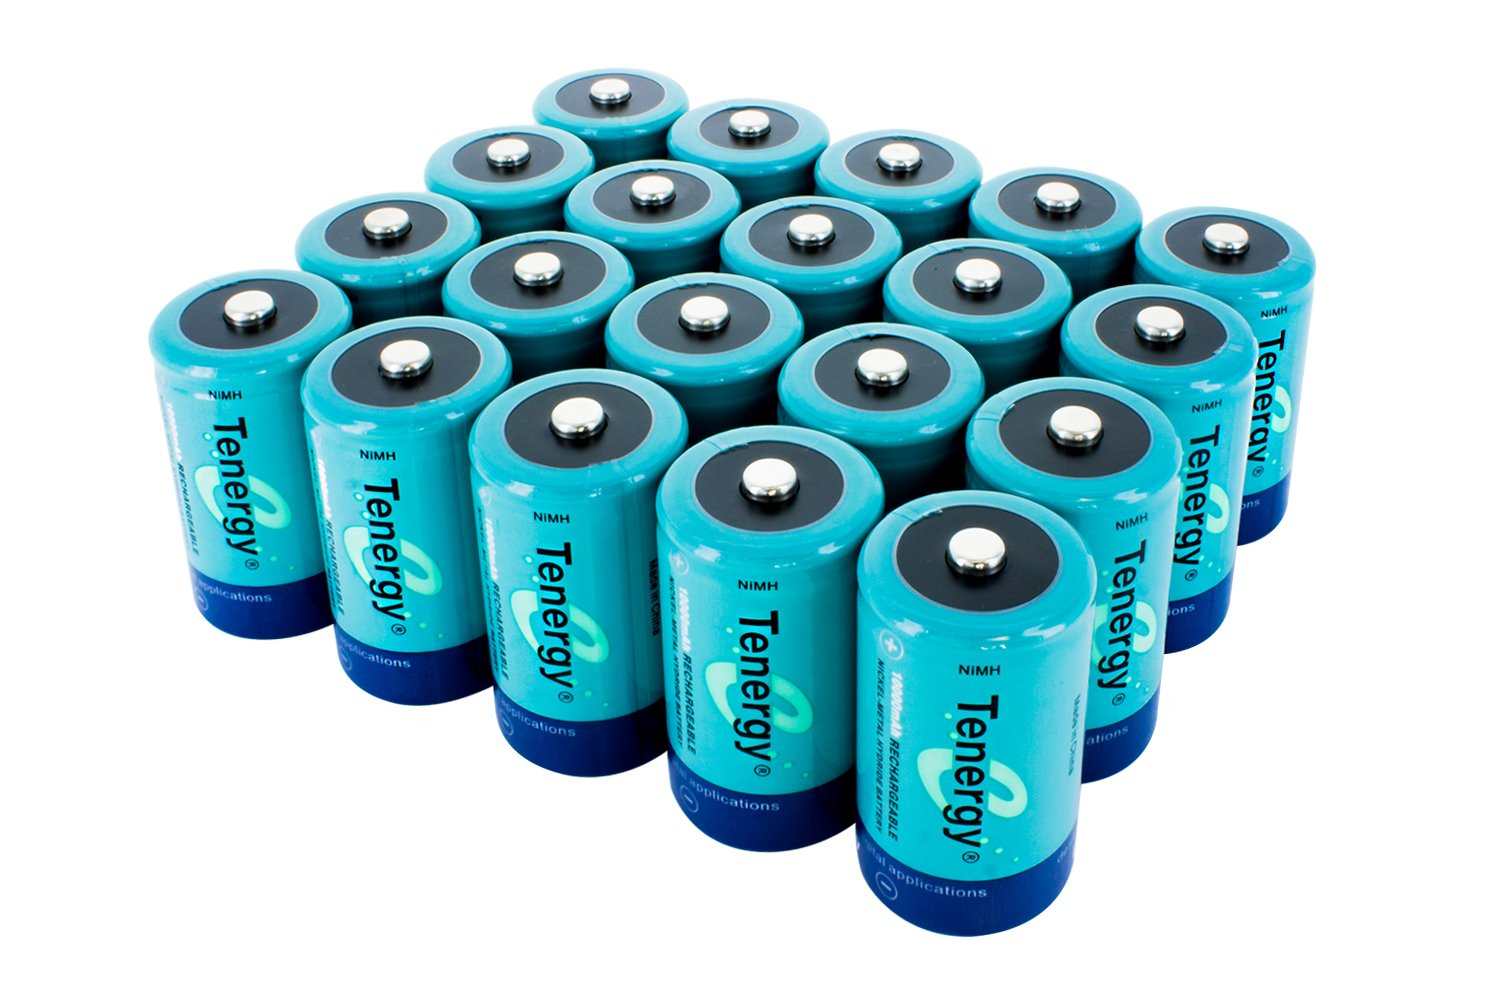 Saving Combo: 20 pcs of Tenergy D Size 10,000mAh High Capacity High Rate NiMH Rechargeable batteries